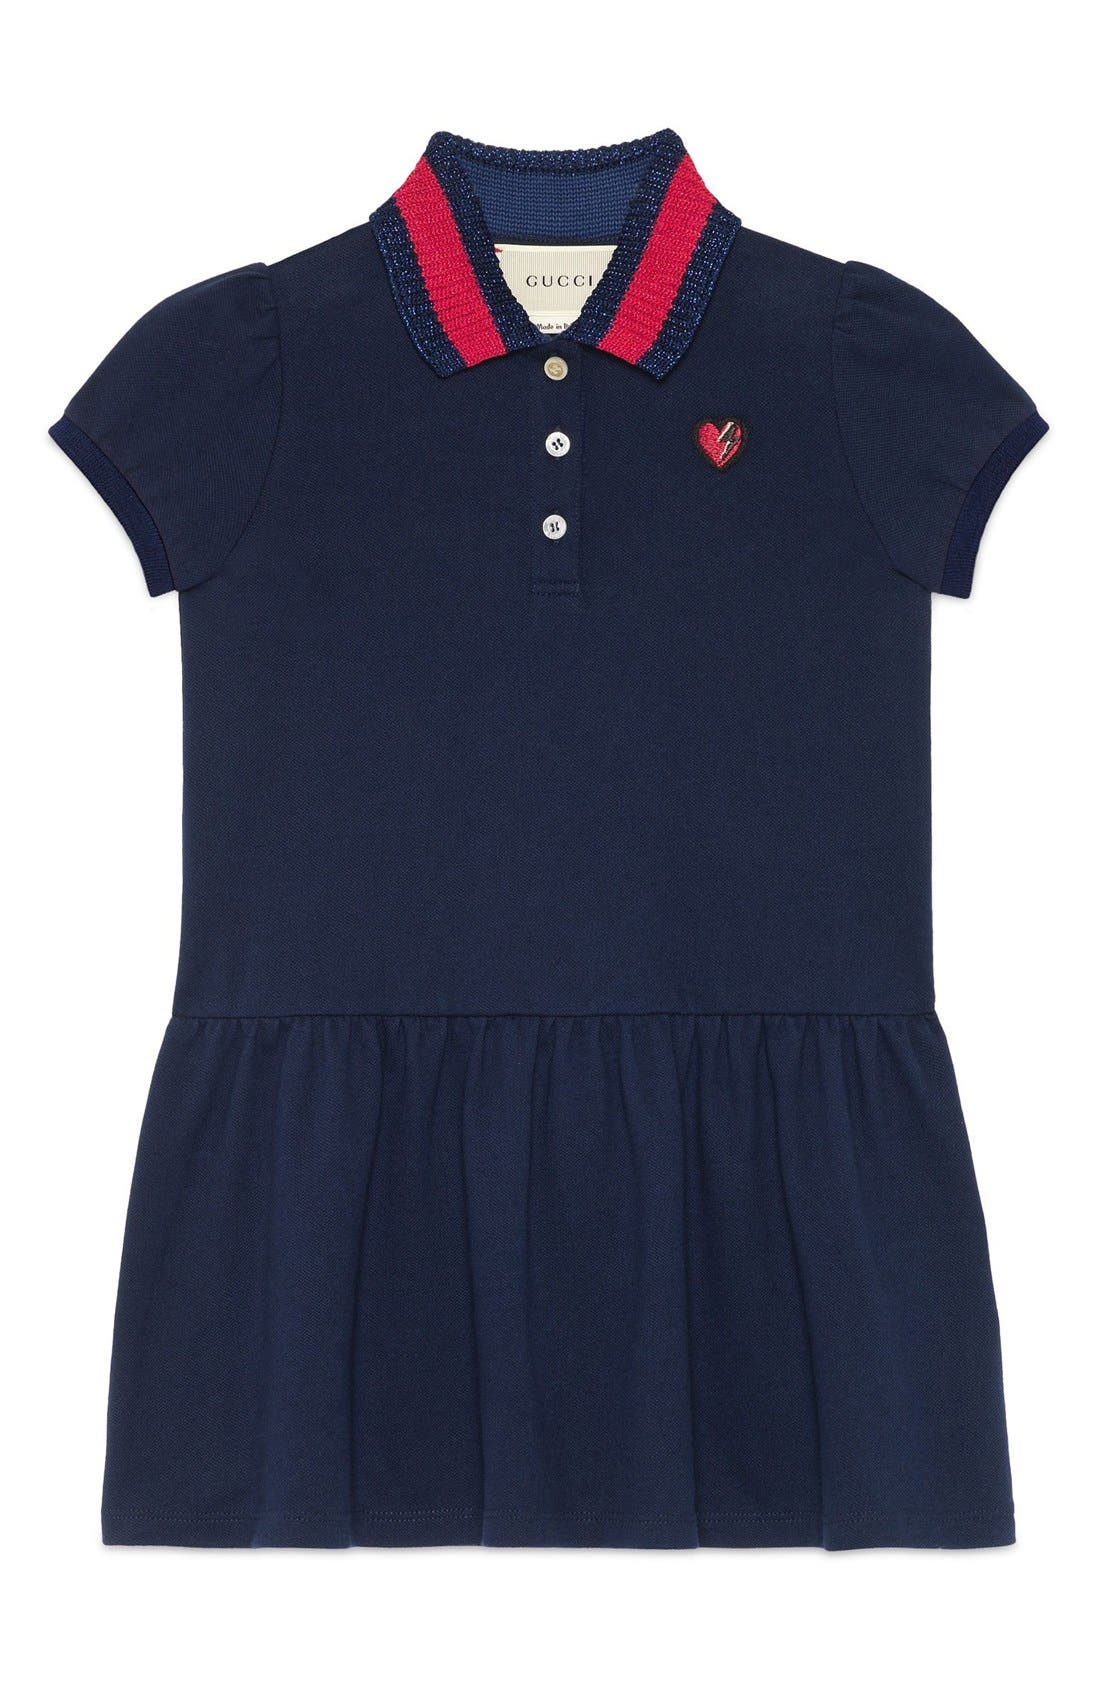 Alternate Image 1 Selected - Gucci Embroidered Dress (Little Girls & Big Girls)